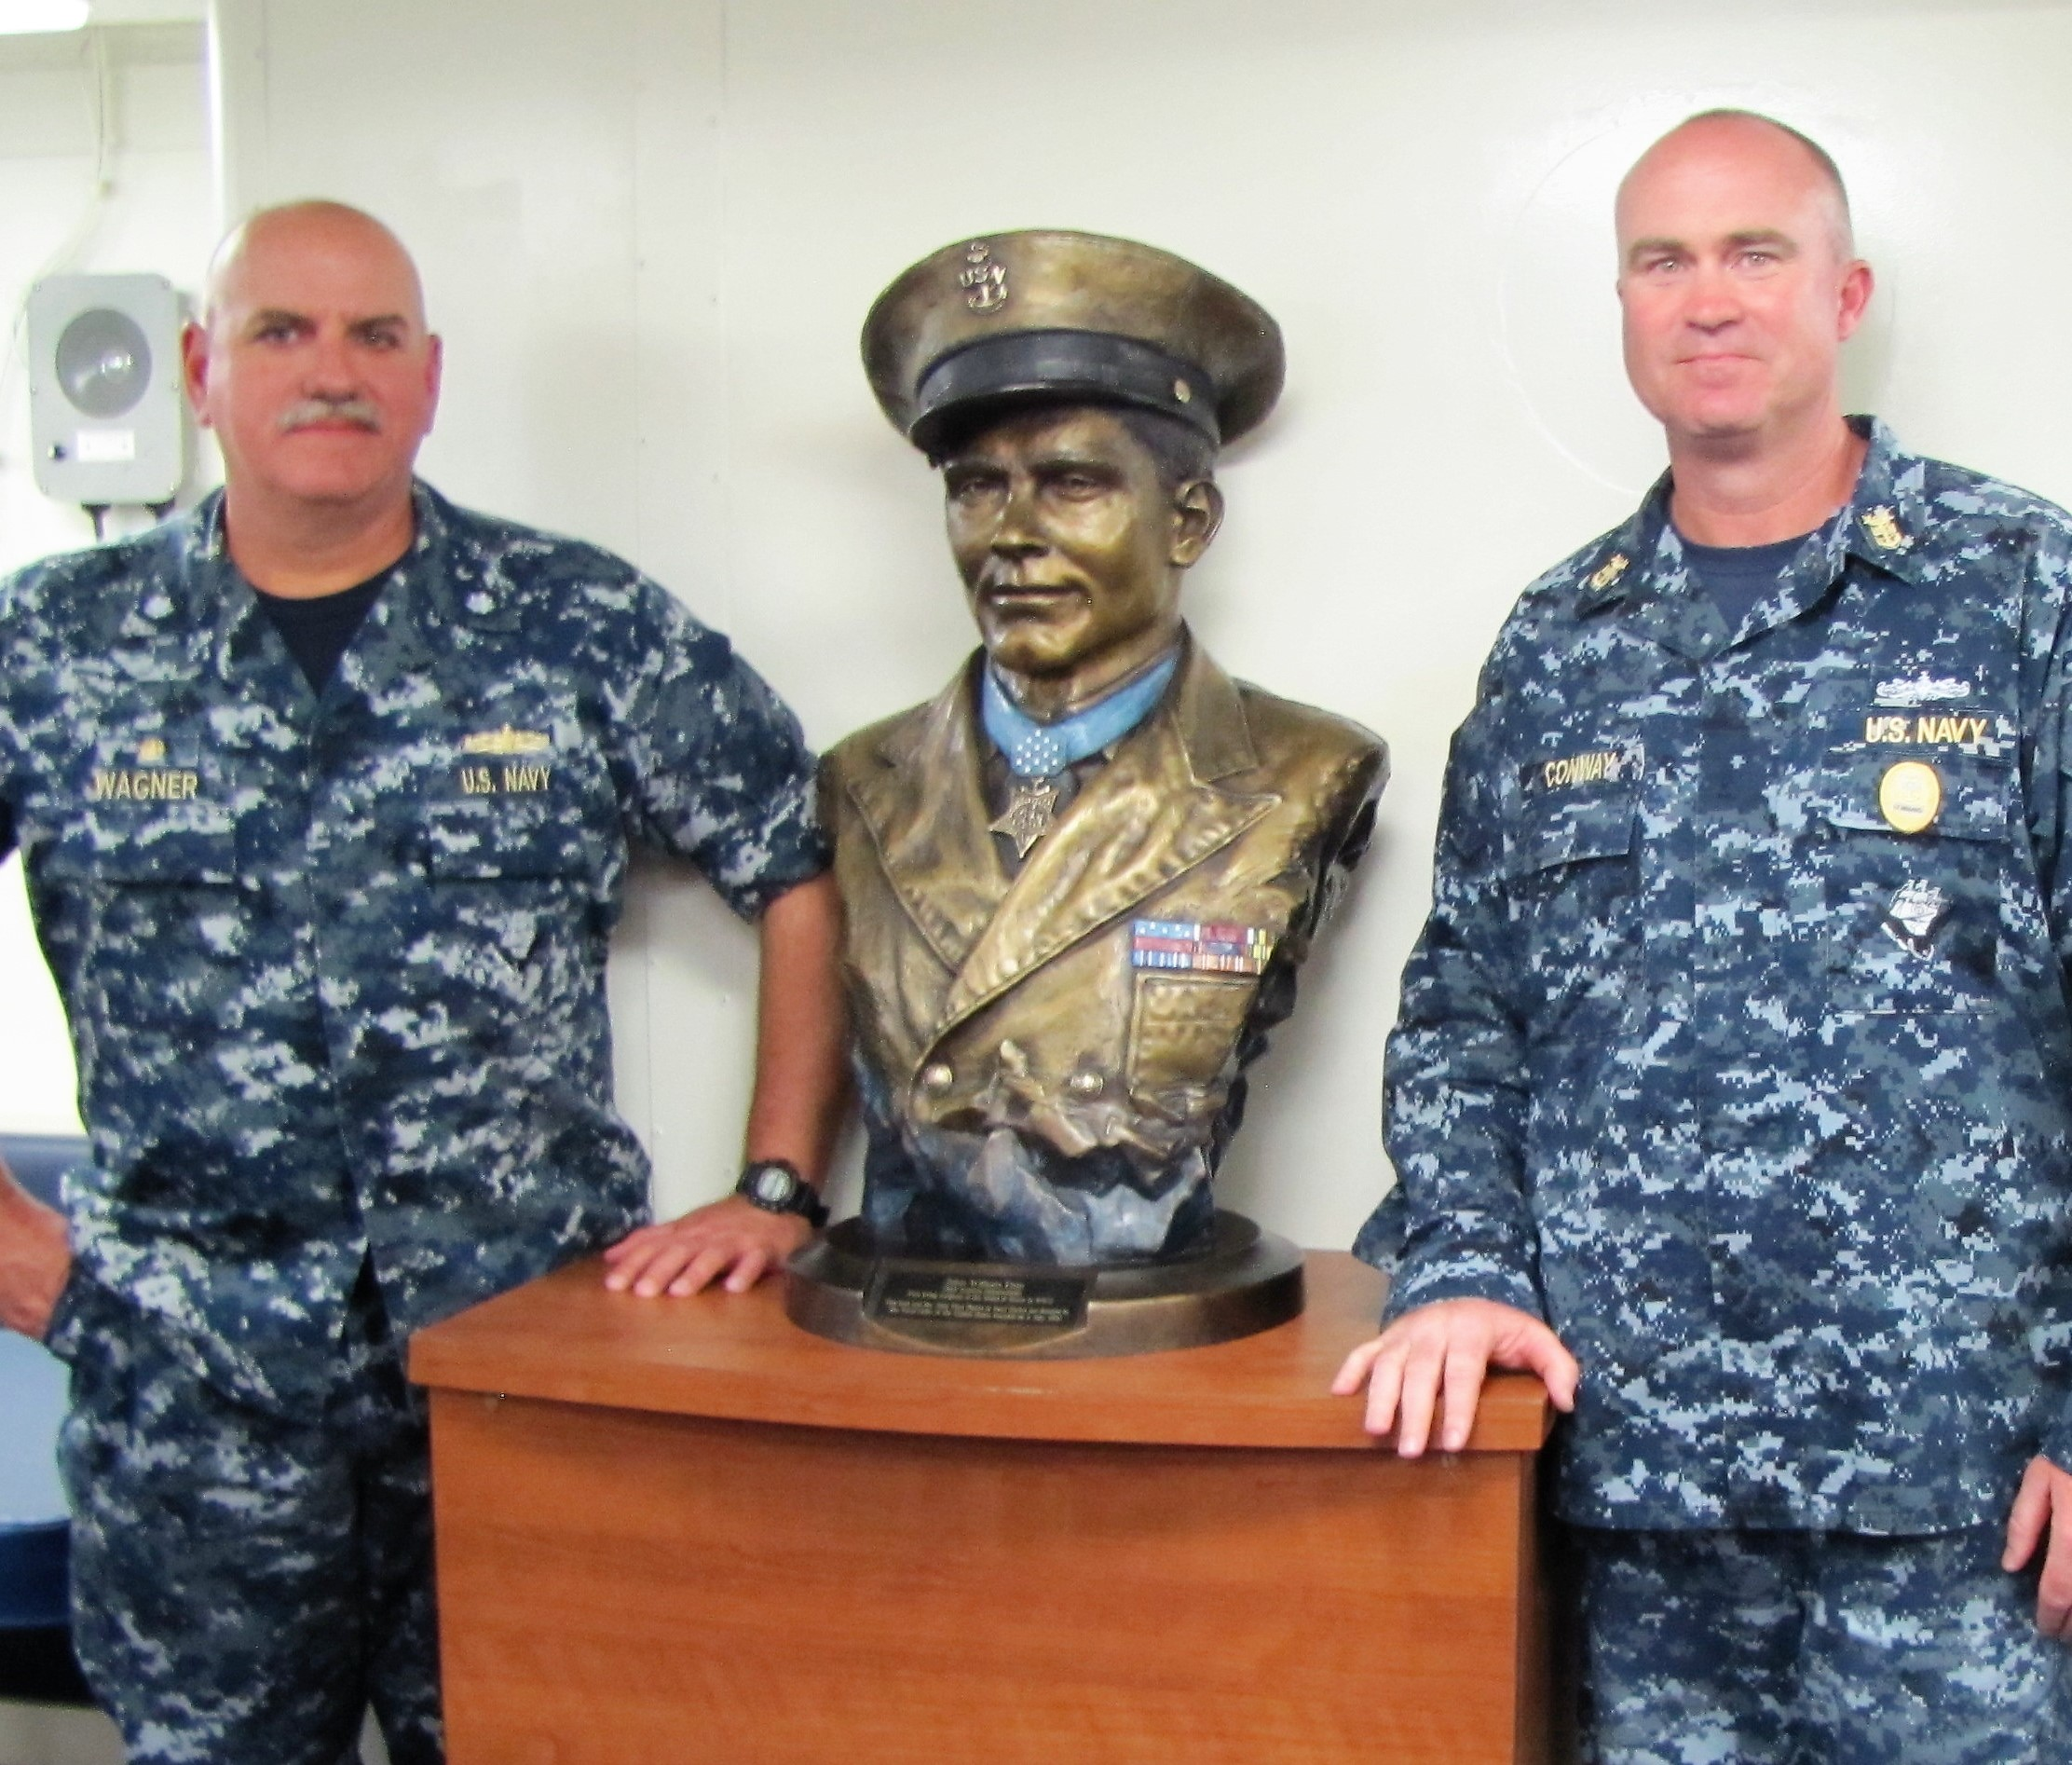 CO CDR Michael Wagner, left of Bust; Command Master Chief Thomas Conway, right of bust